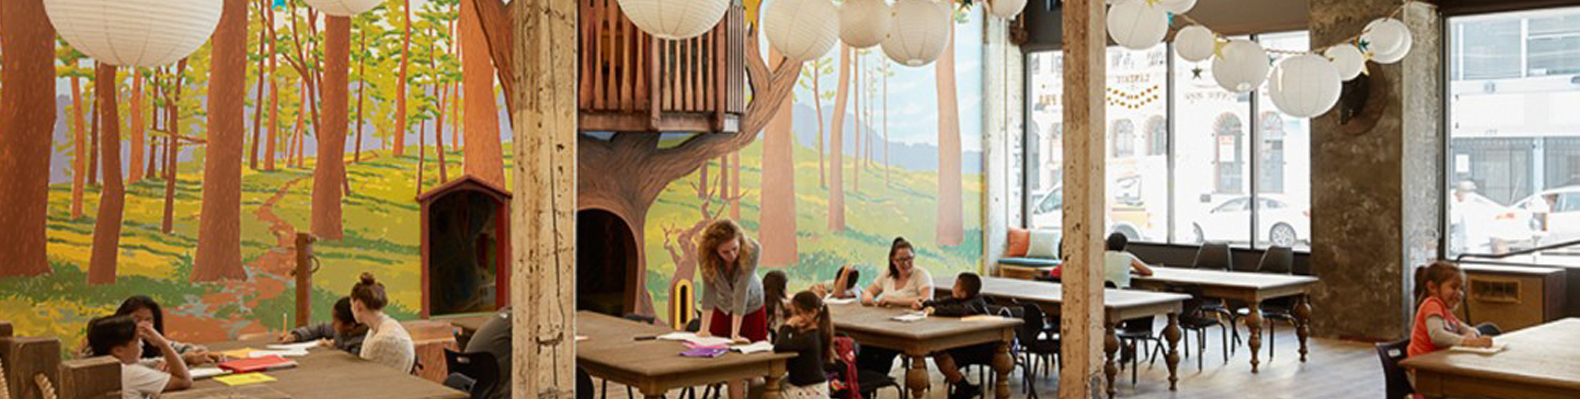 Elegant San Francisco Community Rallies To Give Kids A Safe Writing Hub In The  Tenderloin District   Inhabitat   Green Design, Innovation, Architecture,  ...